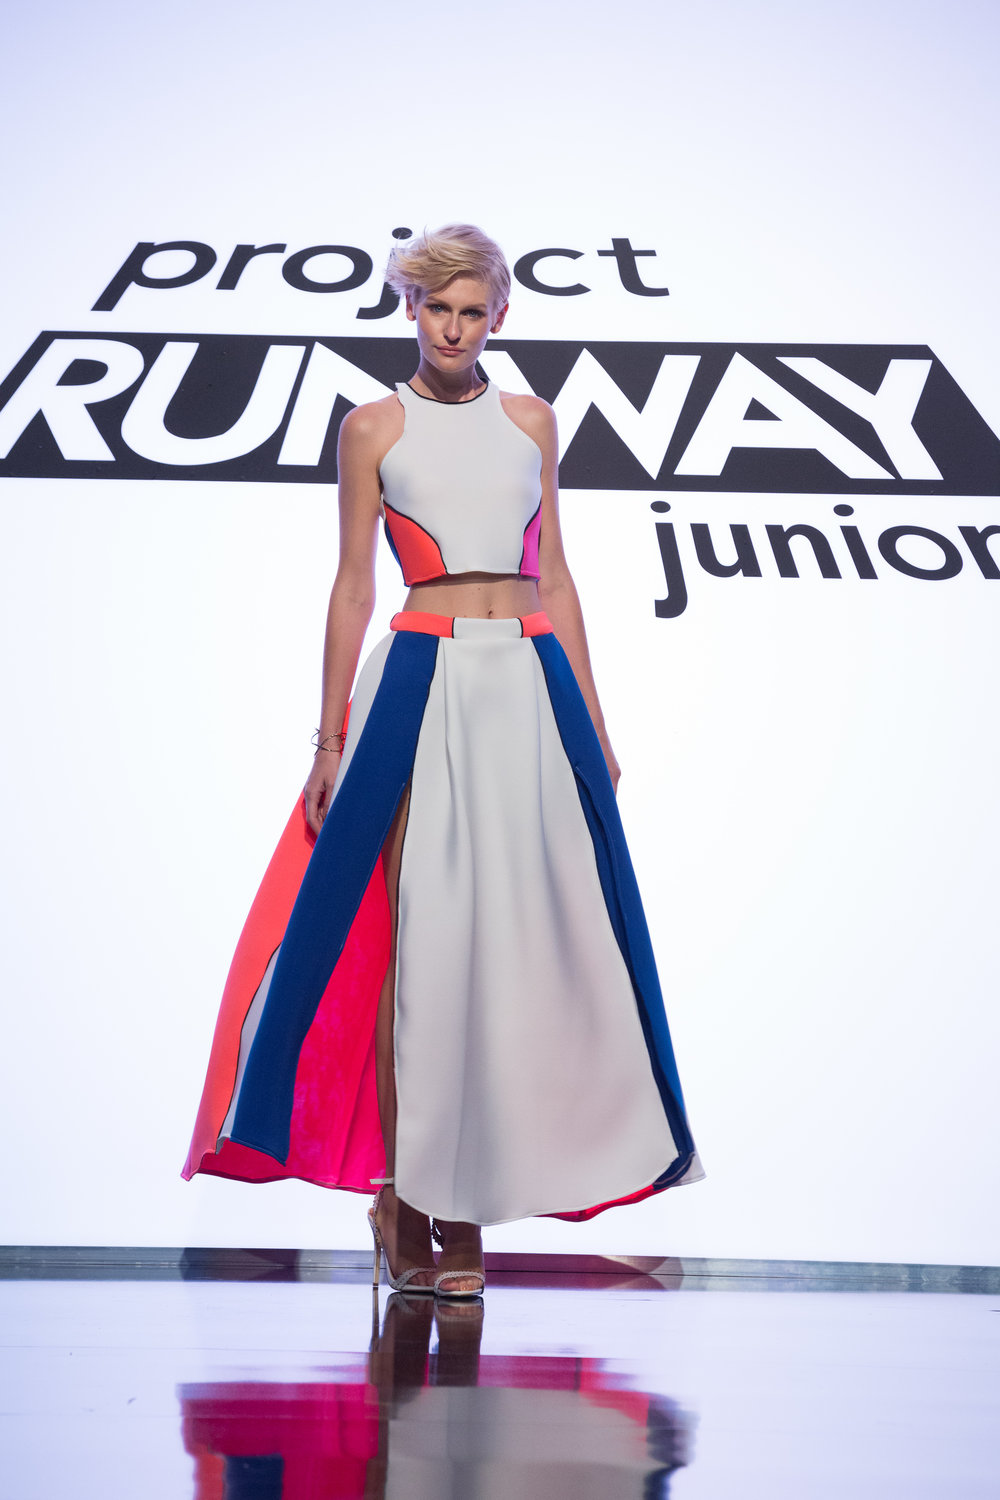 PROJECT RUNWAY JUNIOR X BUTTER LONDON | EPISODE 1